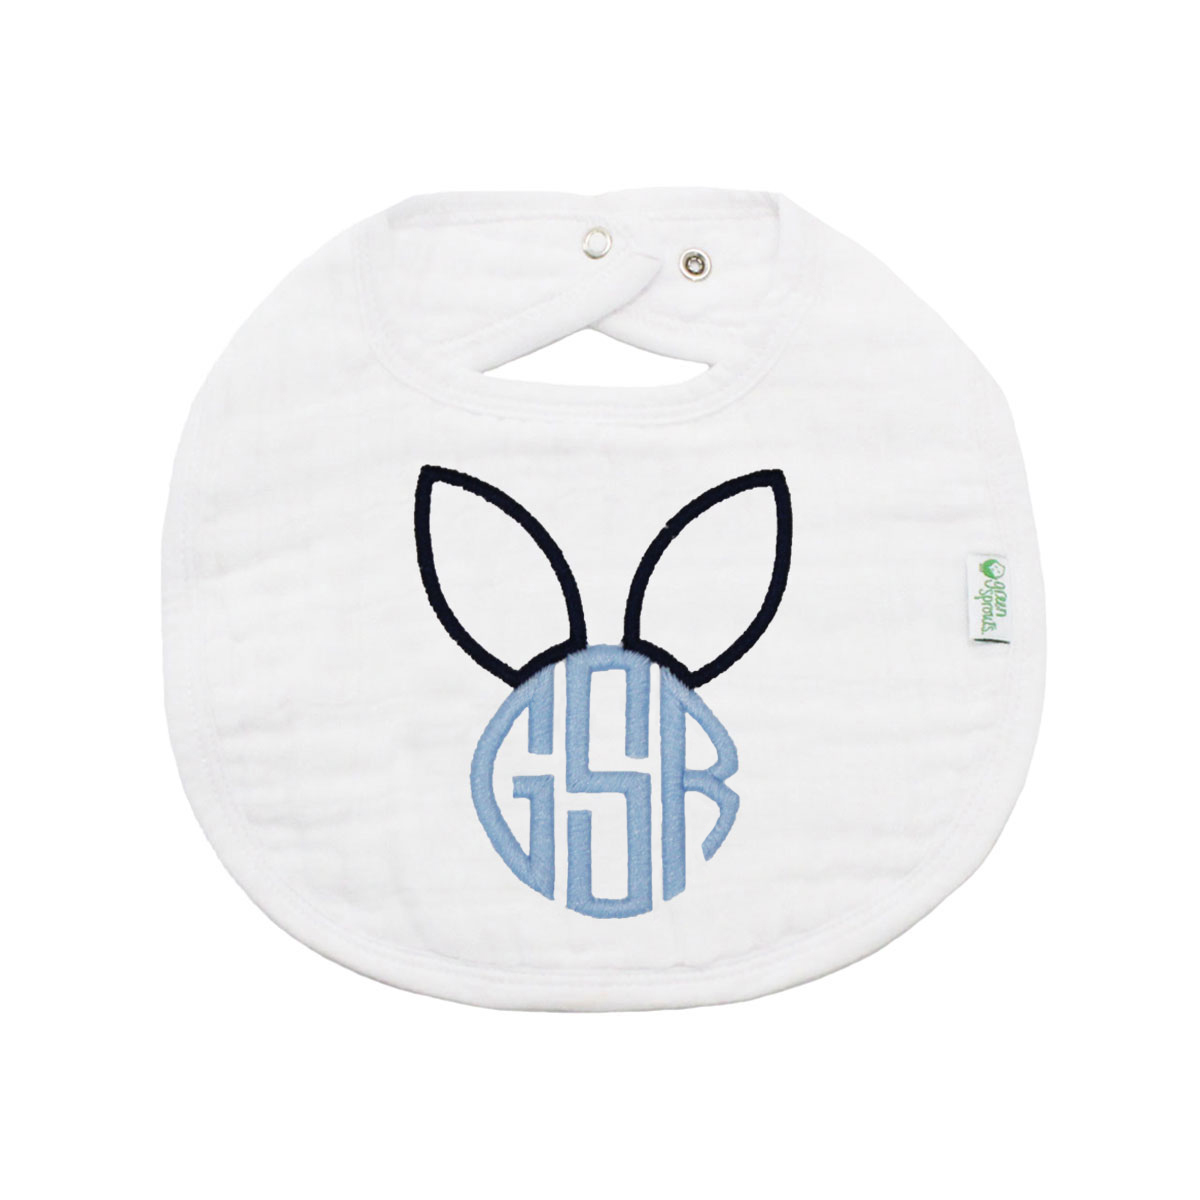 The Tot Organic White Bib with Bunny Monogram in Blue Classic Font